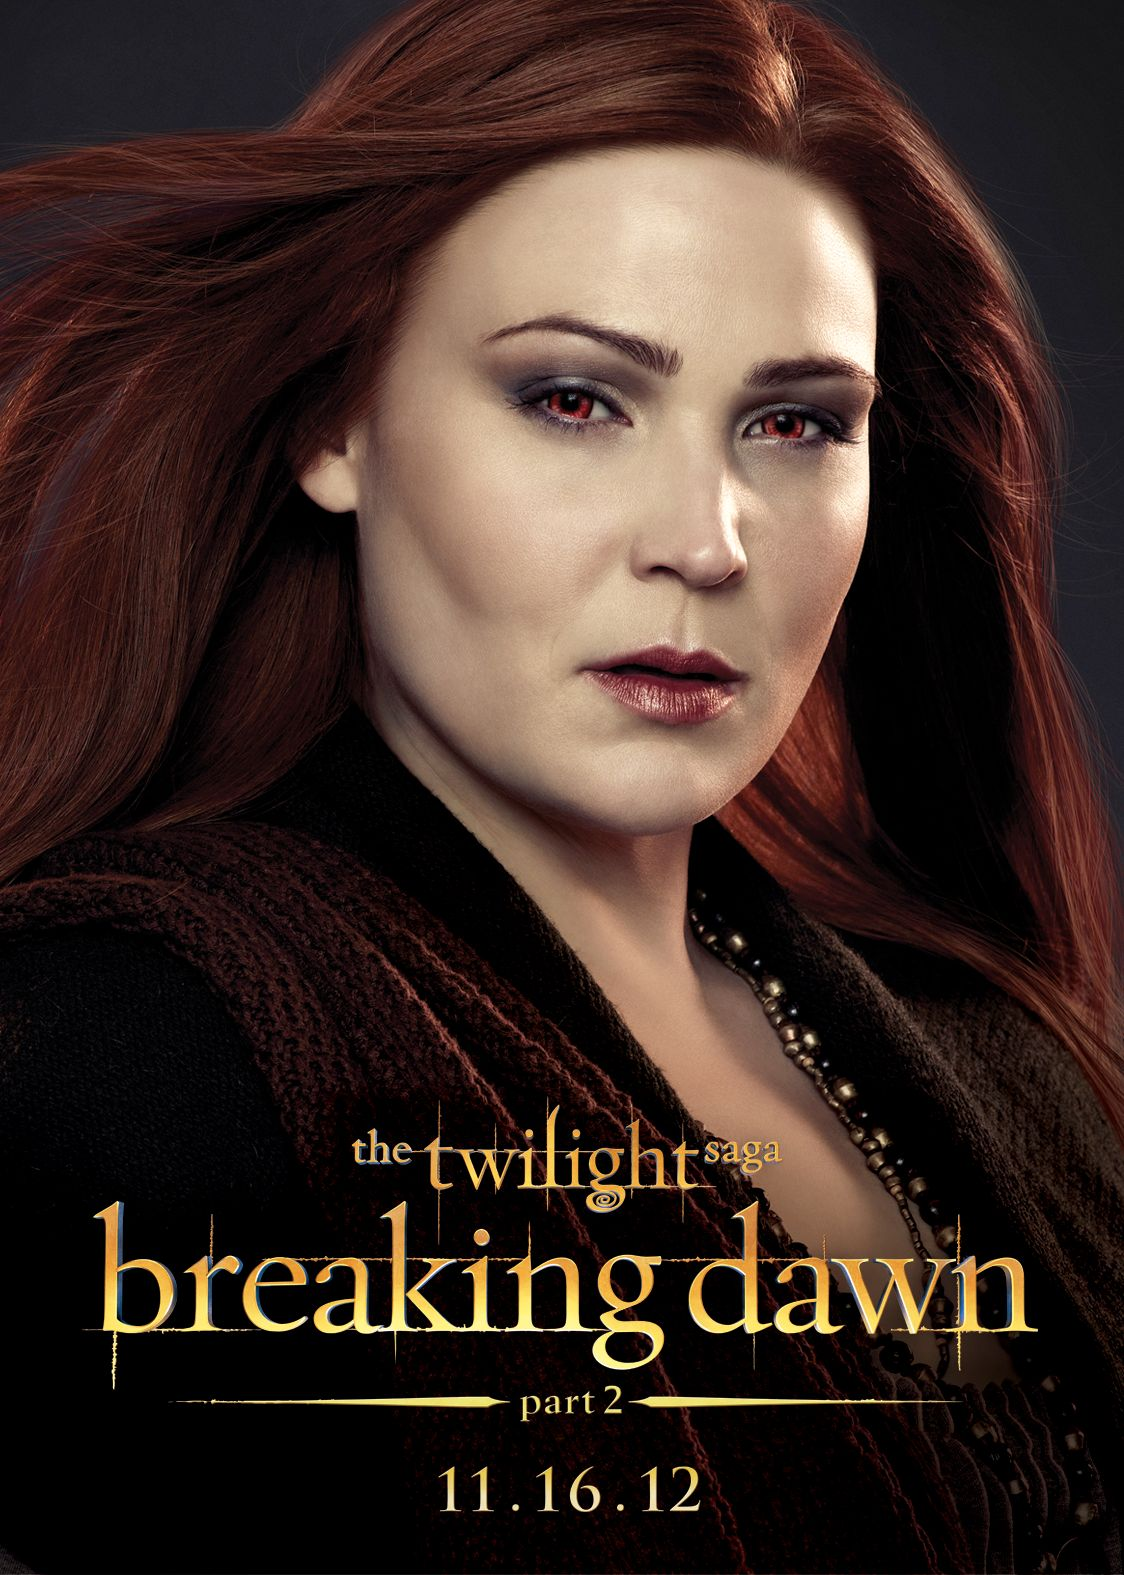 THE TWILIGHT SAGA: BREAKING DAWN - PART 2 Images Reveal ...